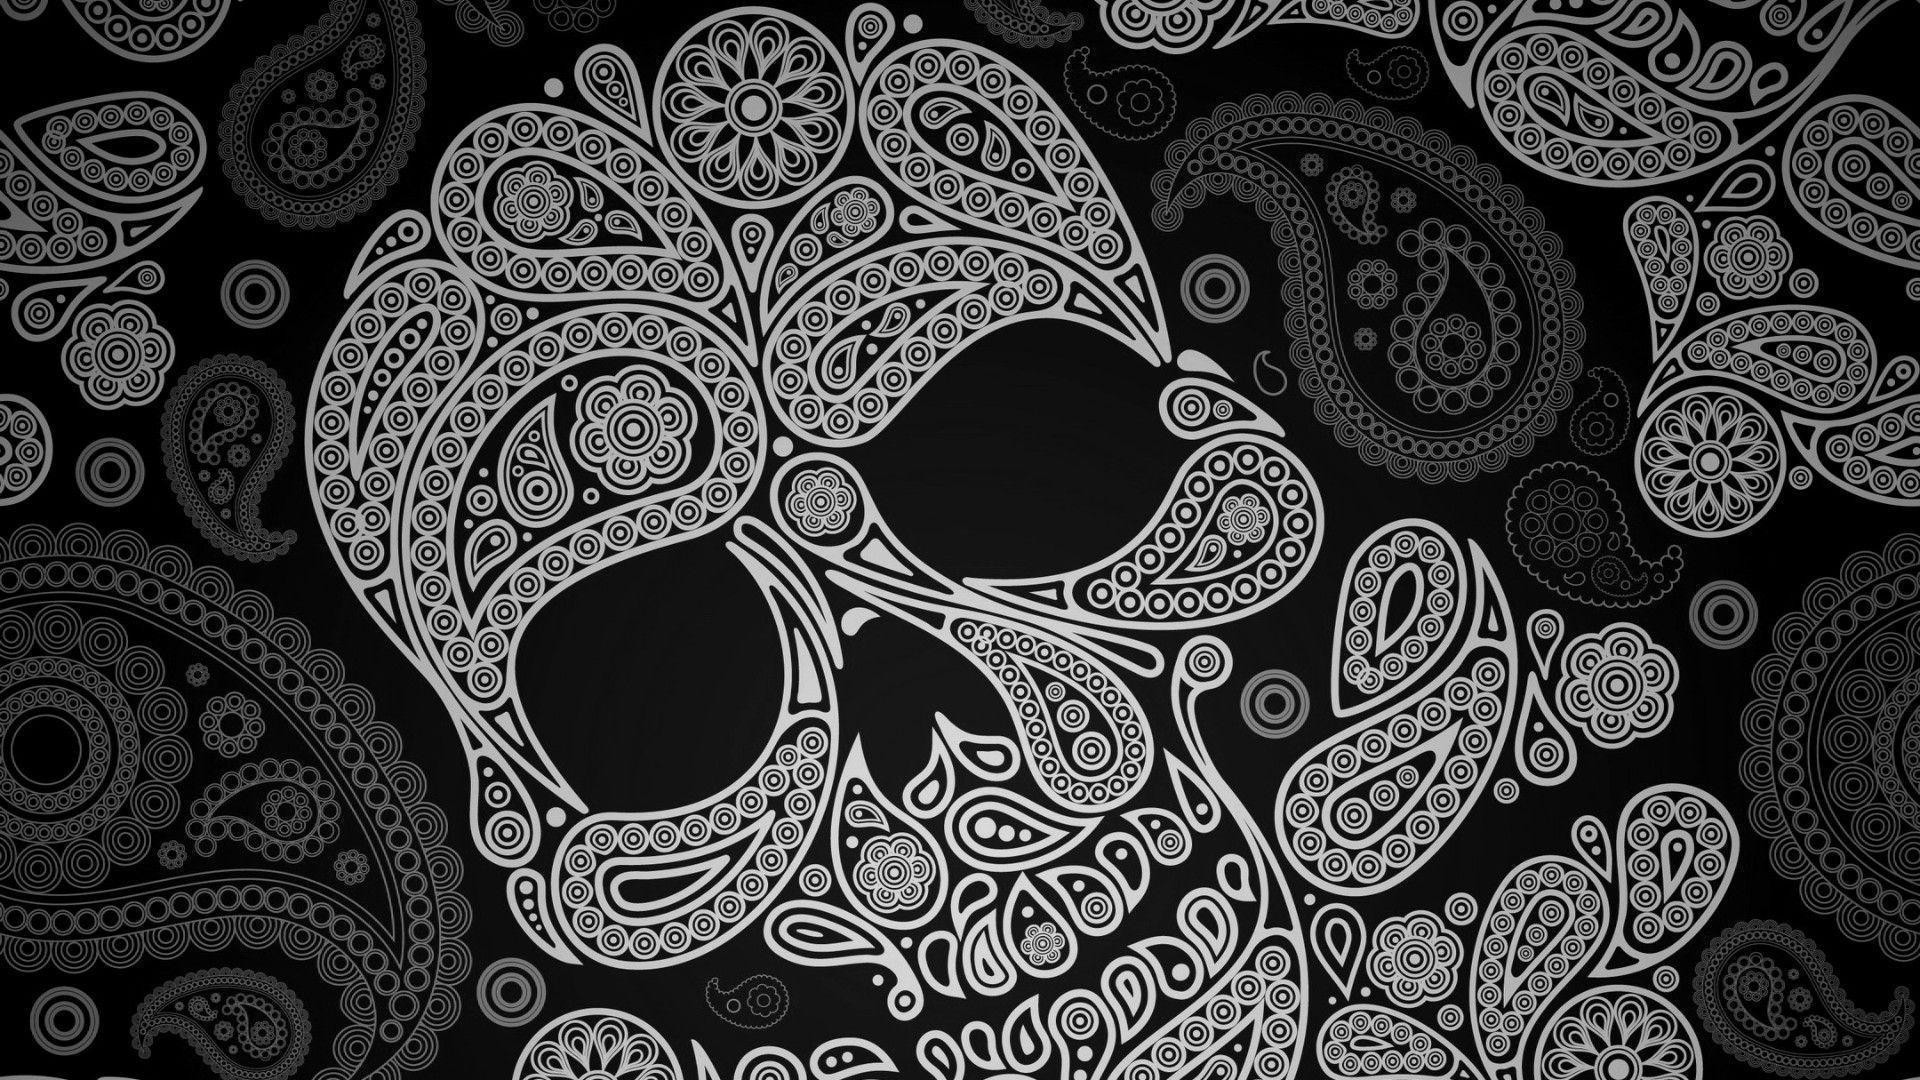 1920x1080 Calavera Wallpapers HD Backgrounds, Images, Pics, Photos Free .